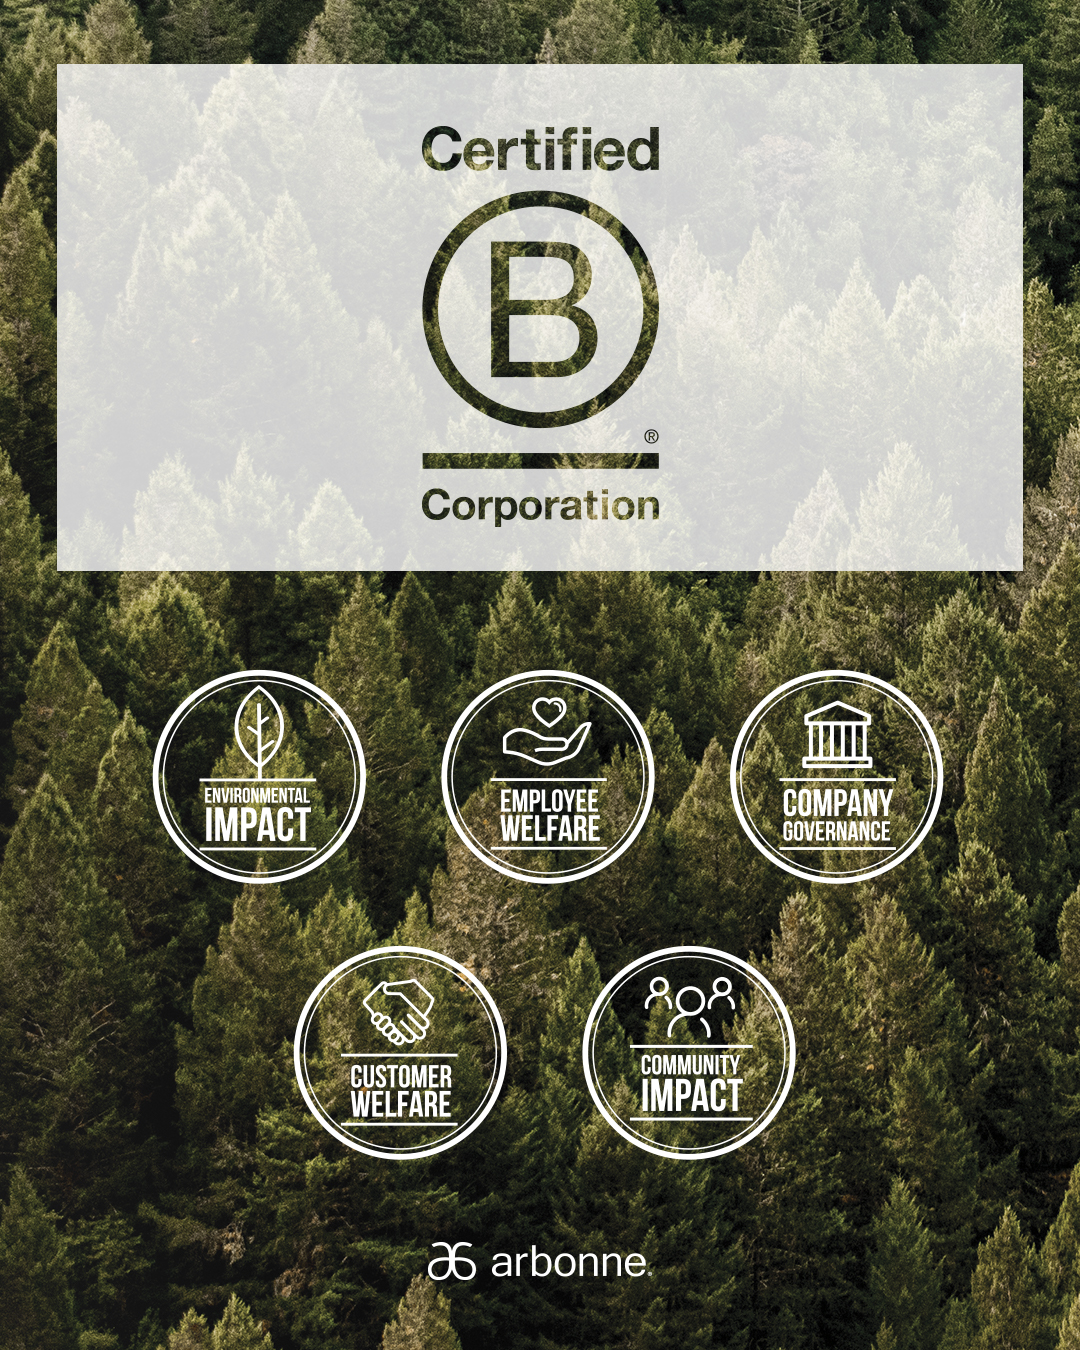 Arbonne is a certified BCorporation balancing profit and purpose.